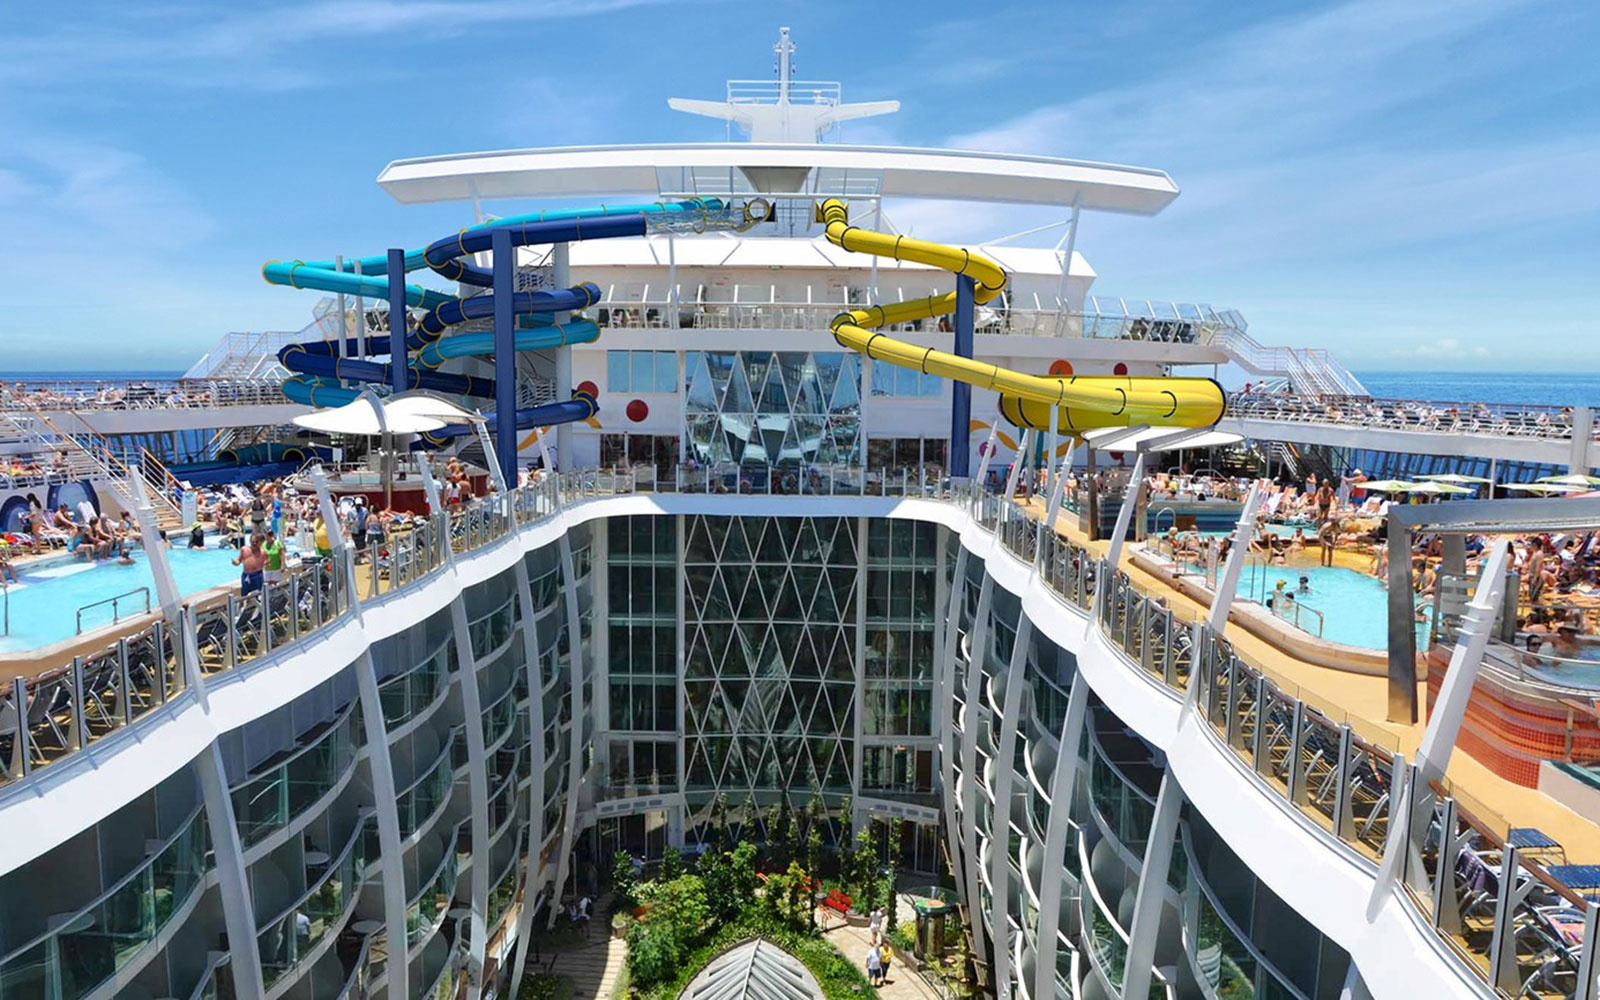 Harmony of the seas enters final round of construction for Round the world cruise 2016